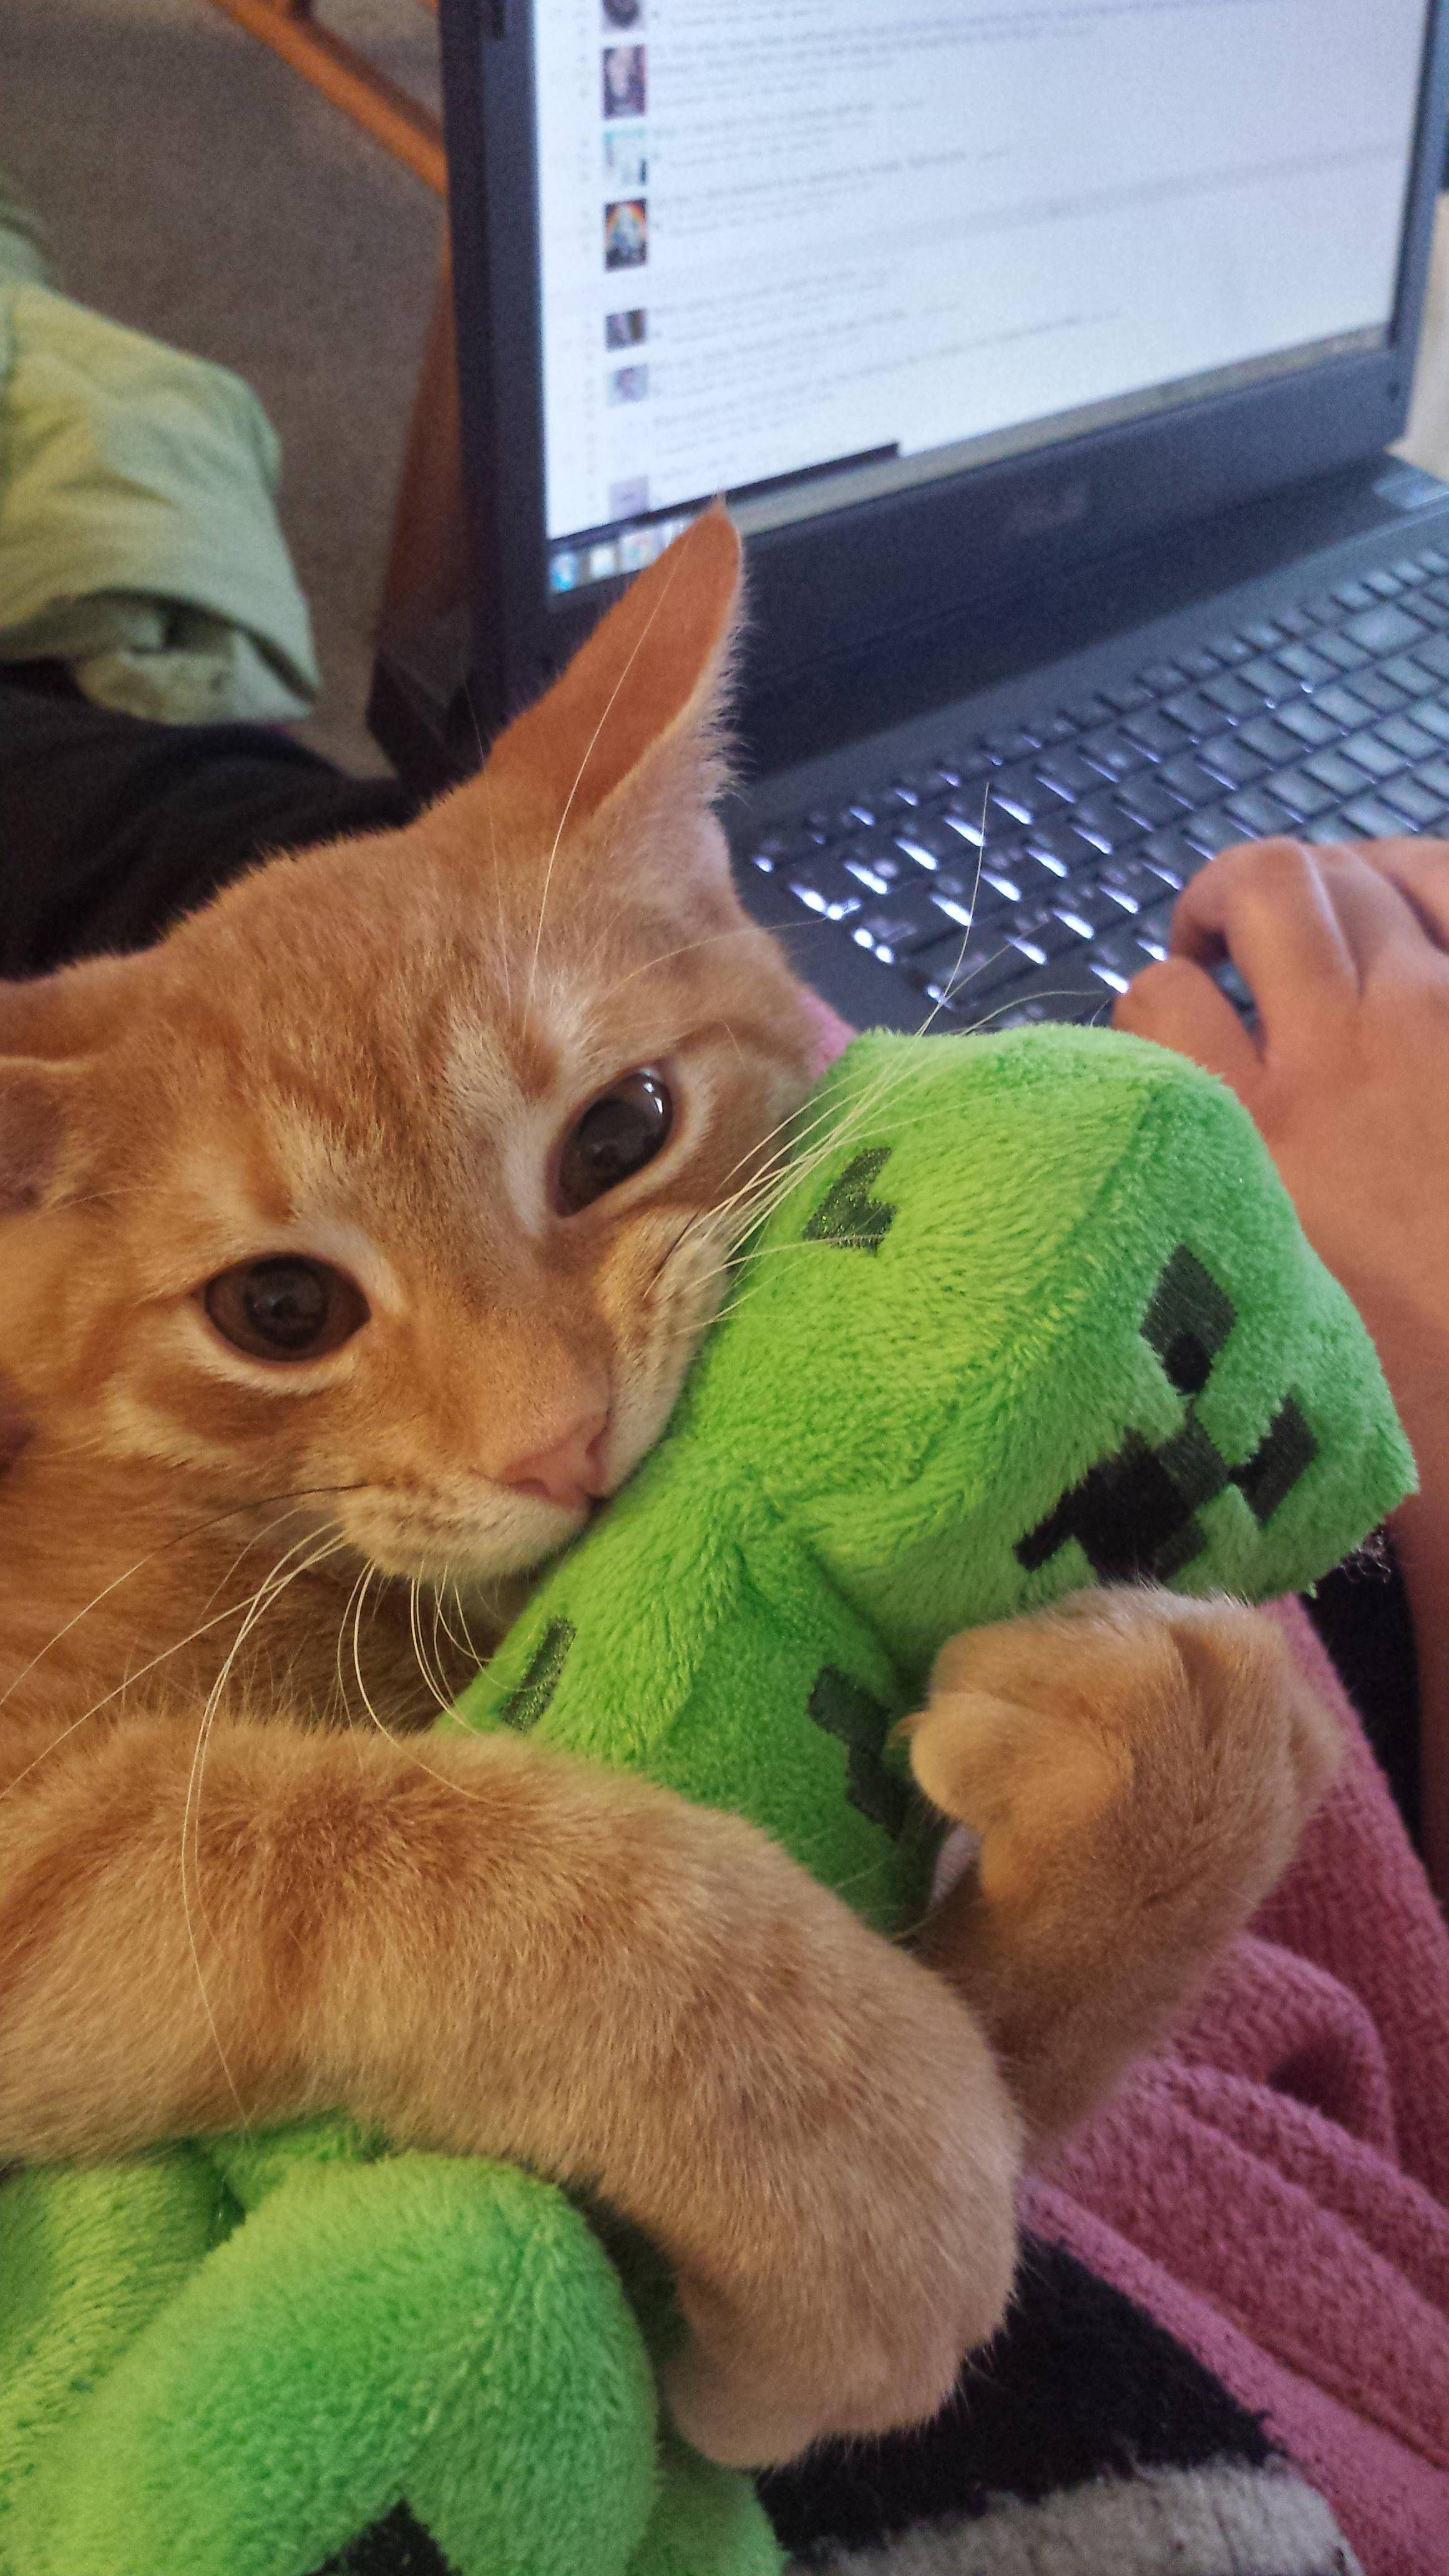 Aww Go Kitty Teach That Thing A Lesson Thats Why Creepers Are Afraid Of Oselots